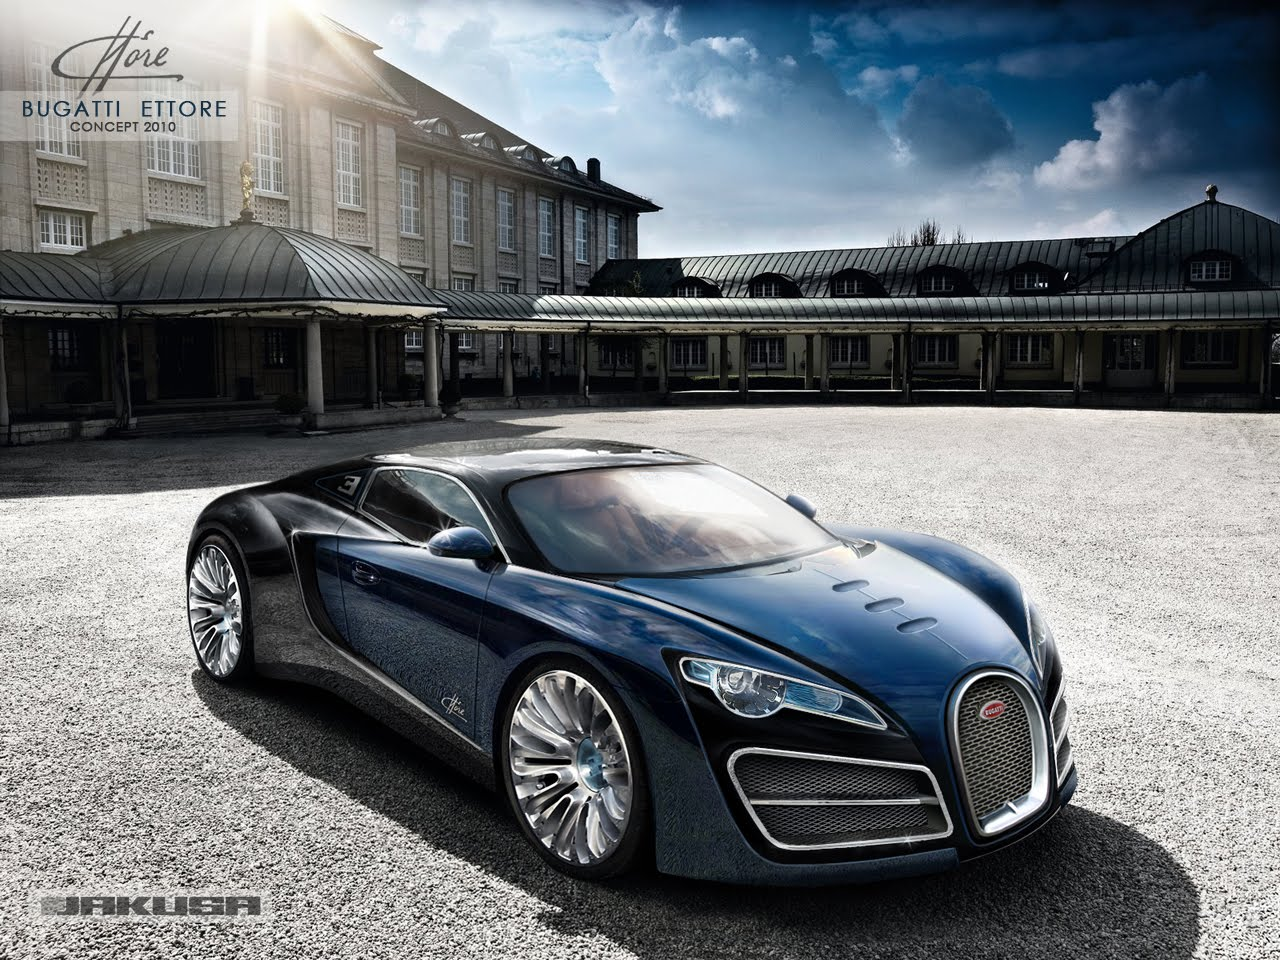 Bugatti Cars Wallpapers Hd: Cars-HD-Wallpapers: Bugatti Ettore Best HD Picture